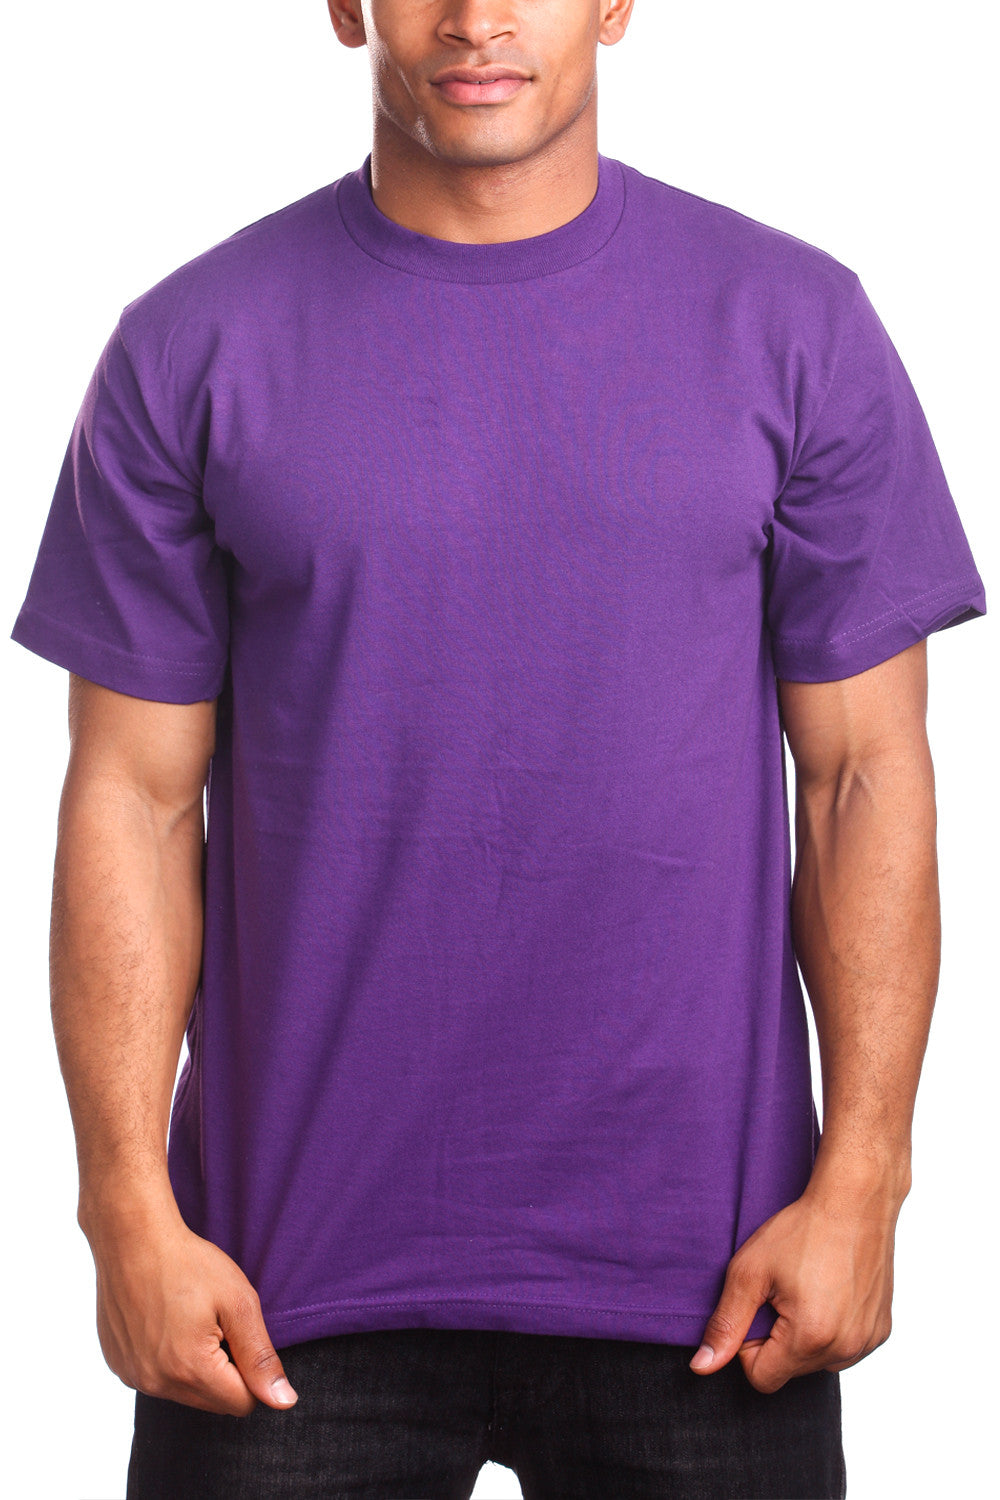 Athletic Fit T-Shirts 2XL - 5XL - Pro 5 Apparel